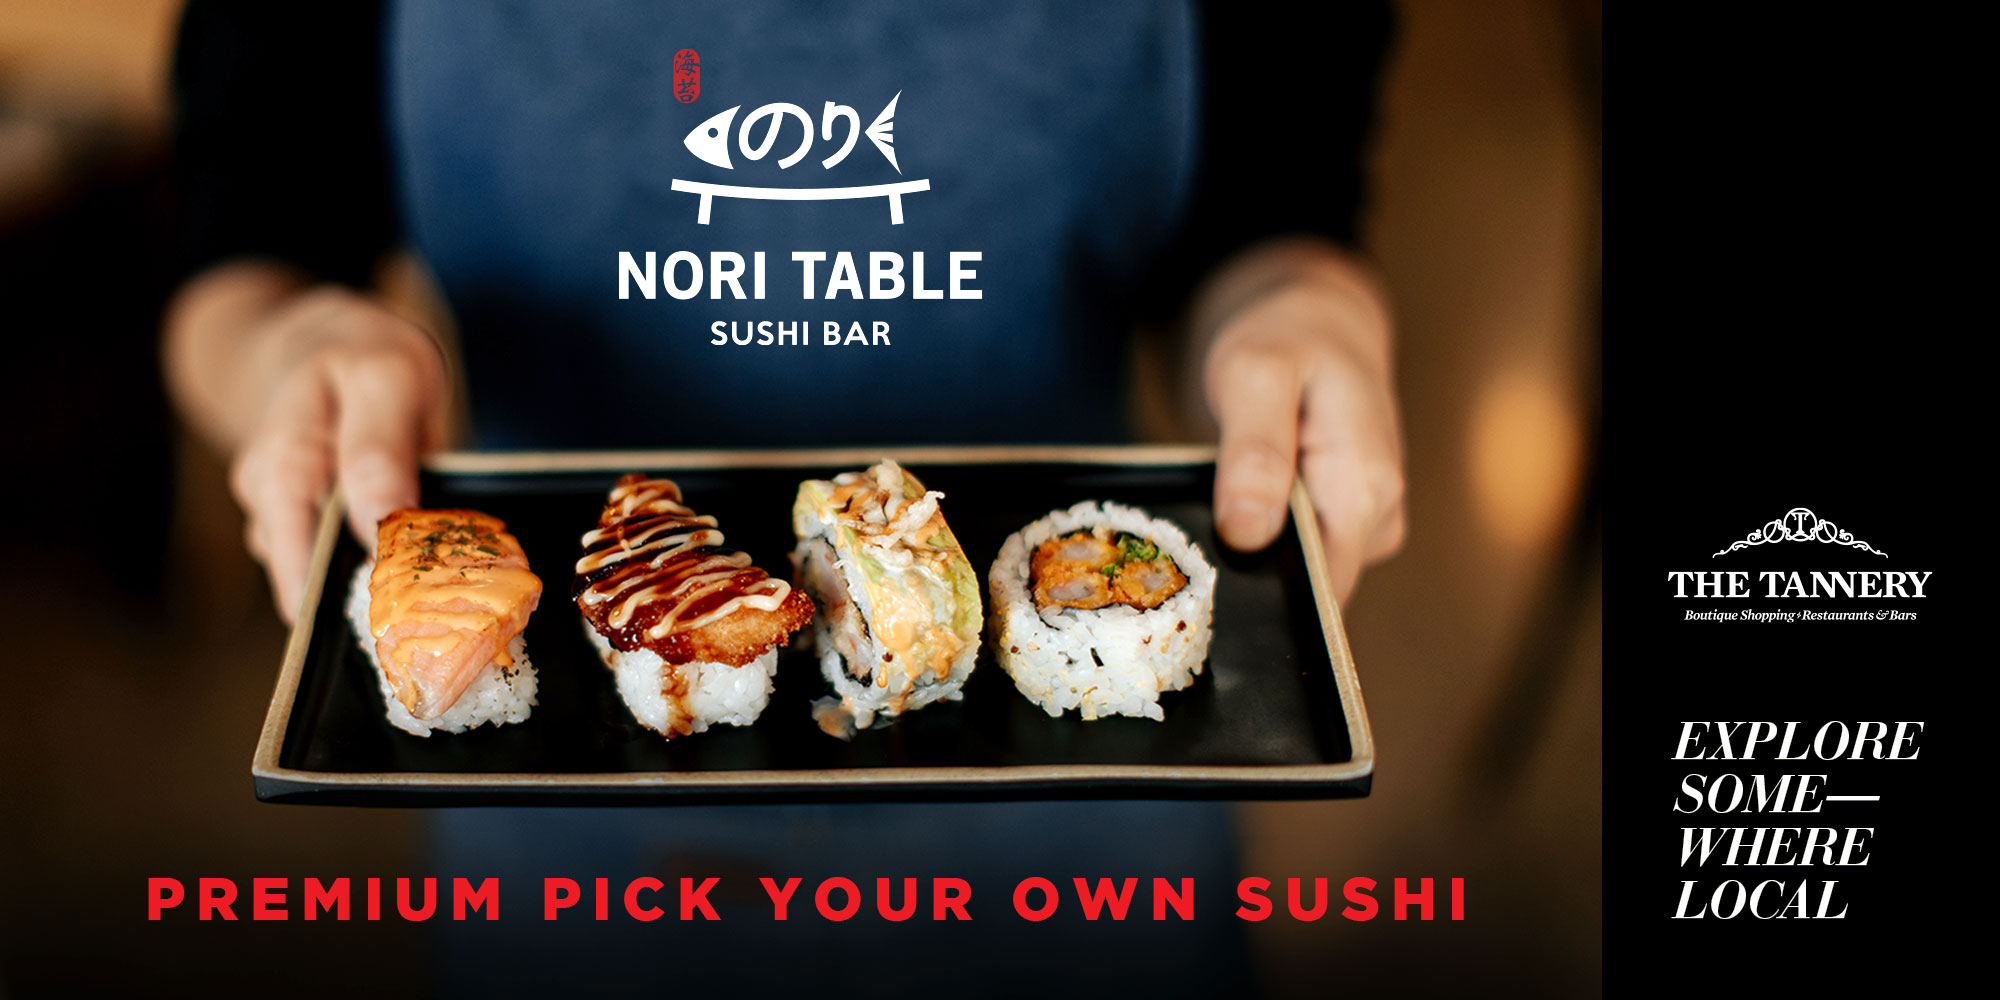 Sushi from Nori Table